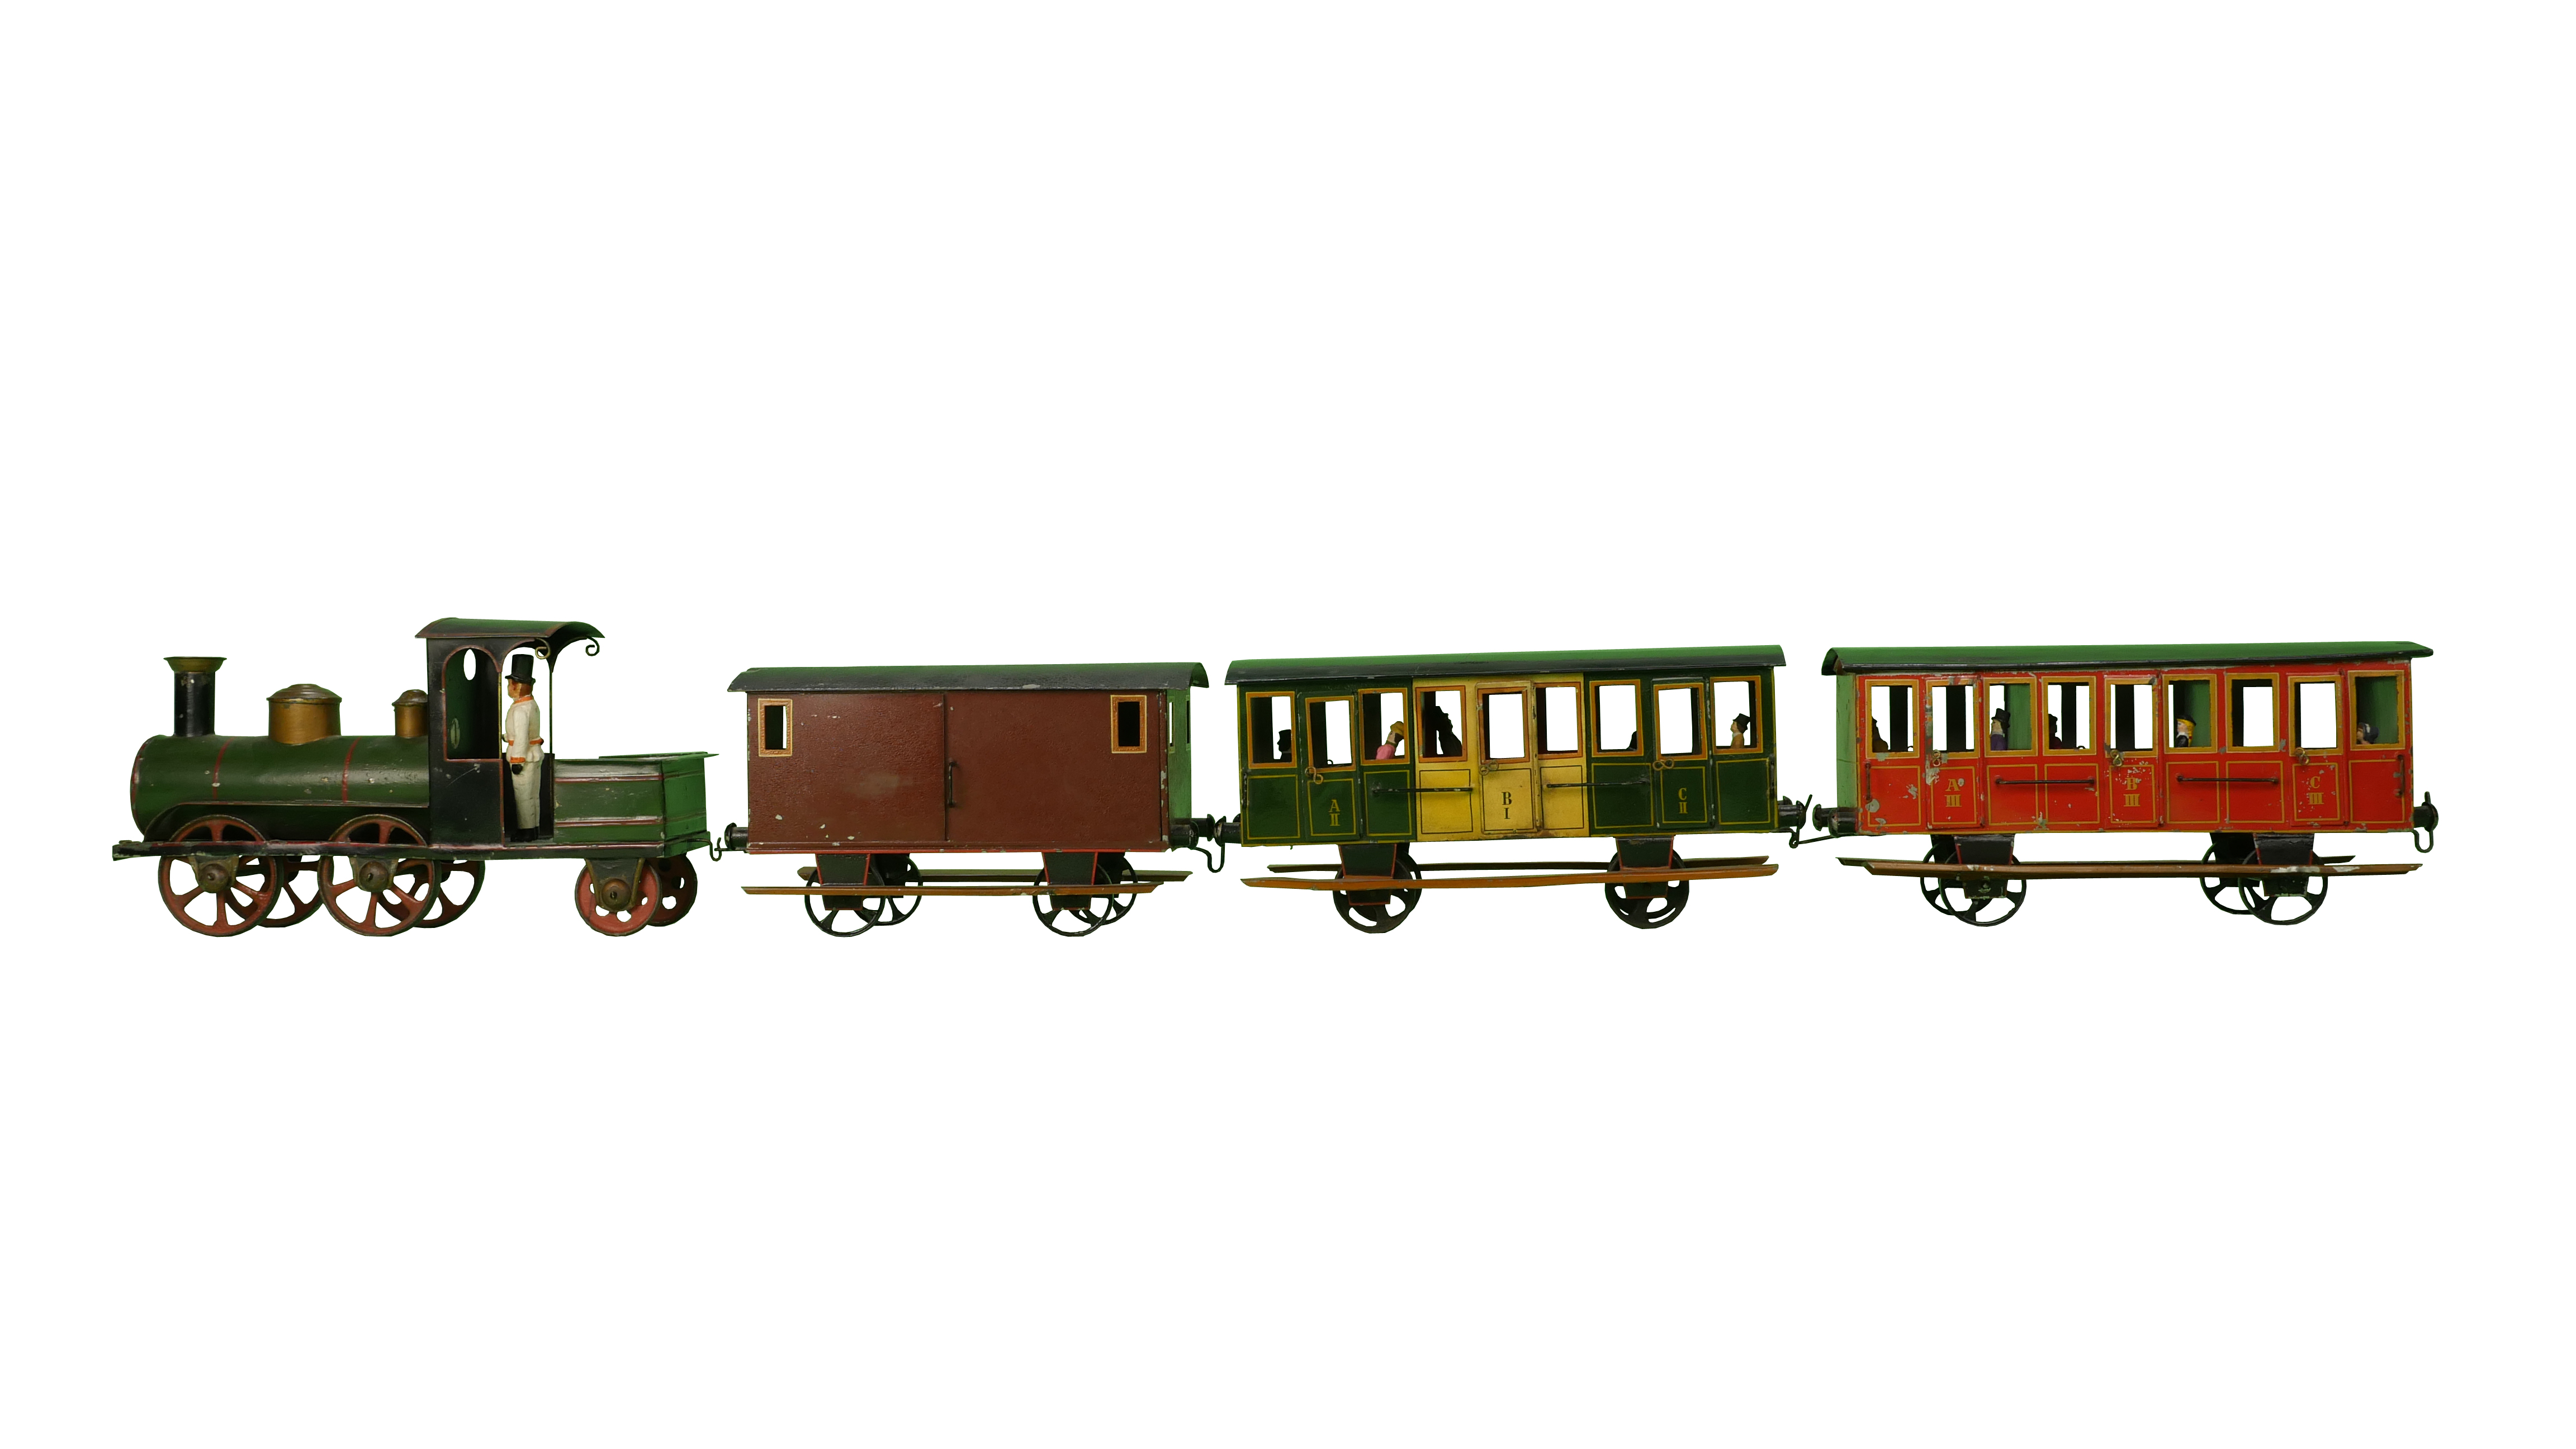 Lutz Toy Company Floor toy train set, 1884. New-York Historical Society, The Jerni Collection.